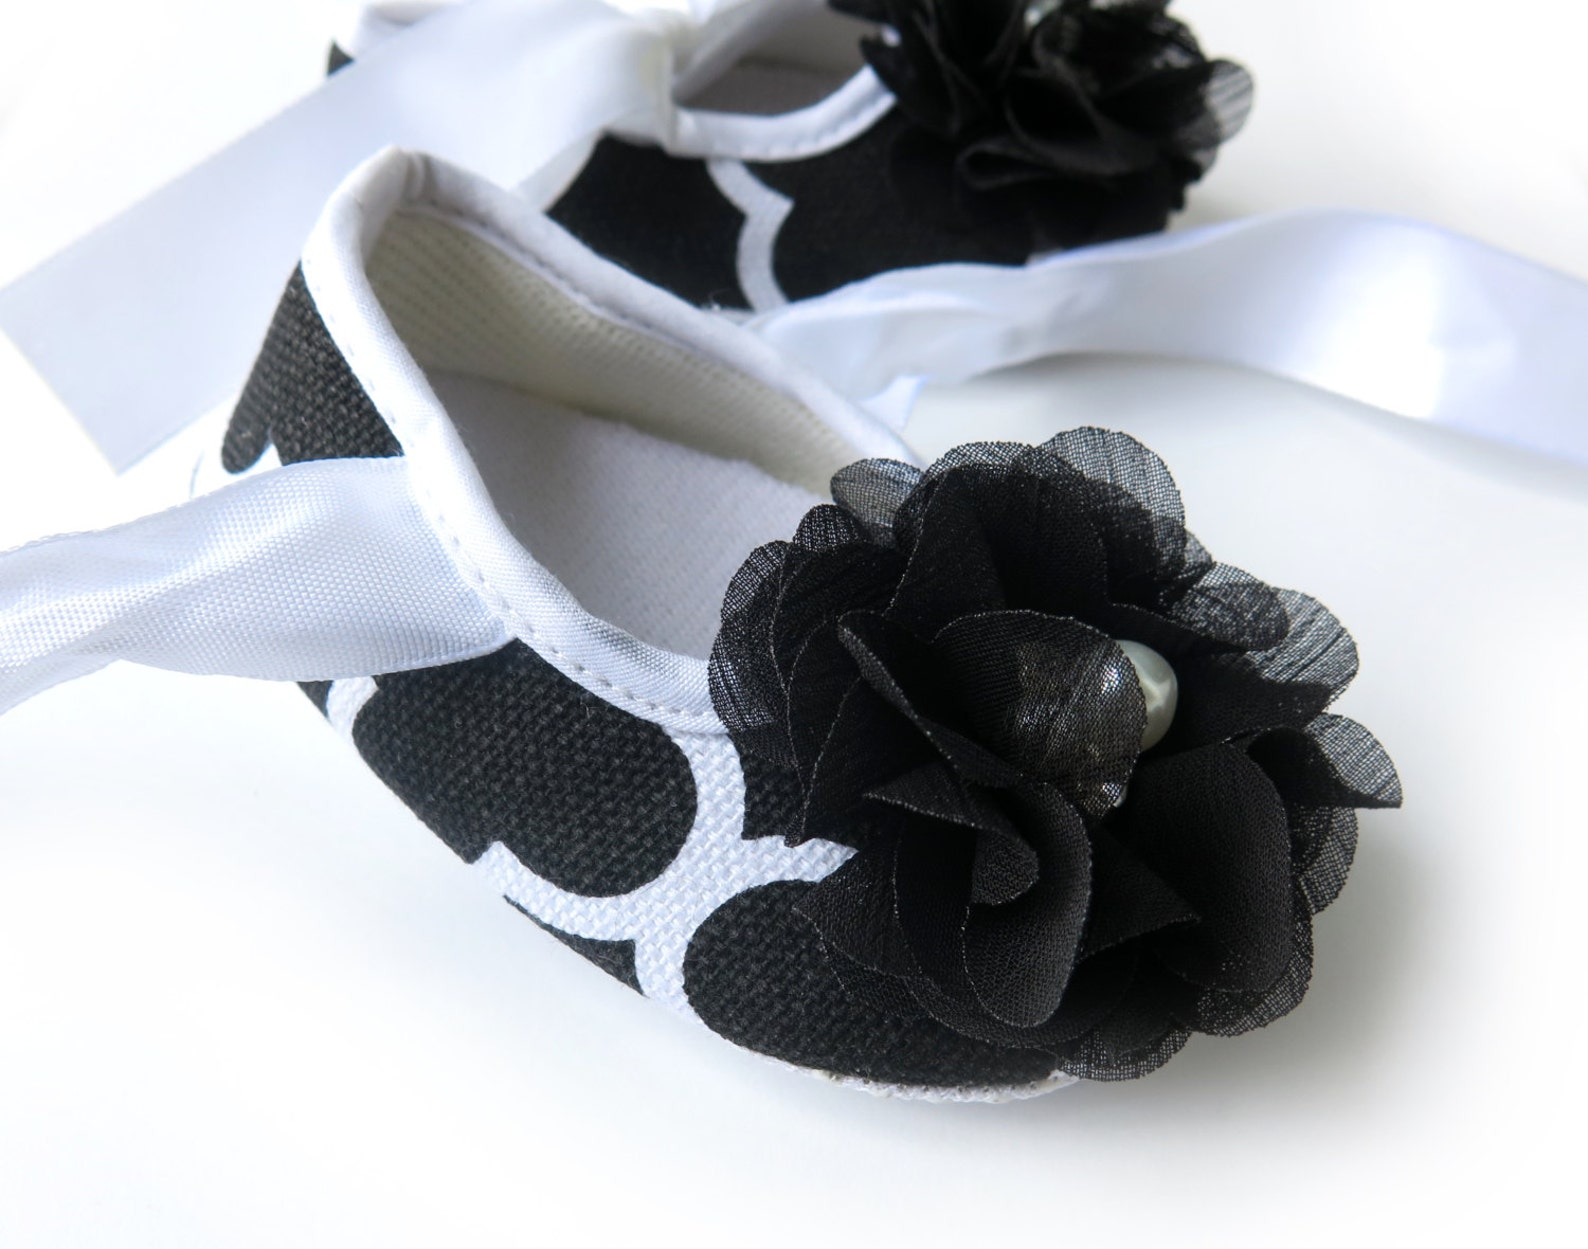 3-6 months black and white baby ballet flats - ready to ship!